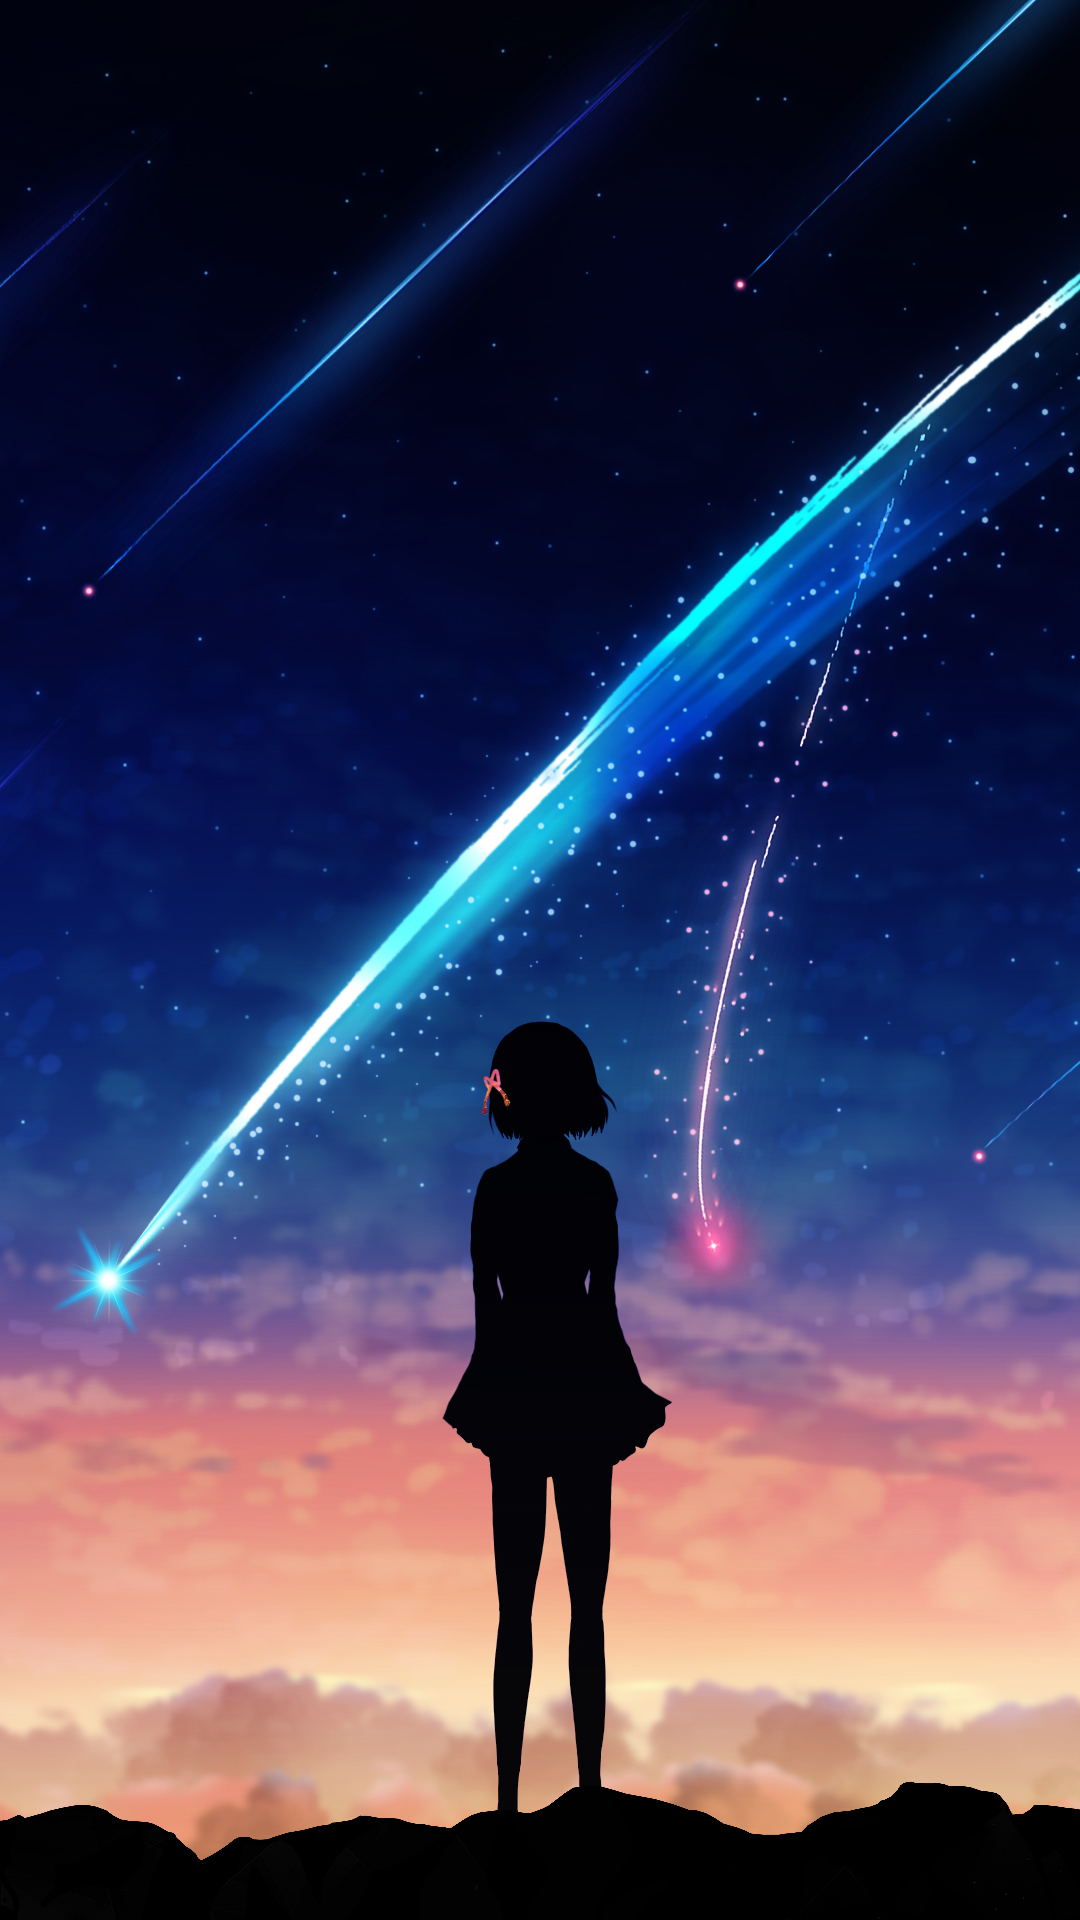 Rainy Wallpaper With Girl Anime Your Name 1080x1920 Wallpaper Id 694138 Mobile